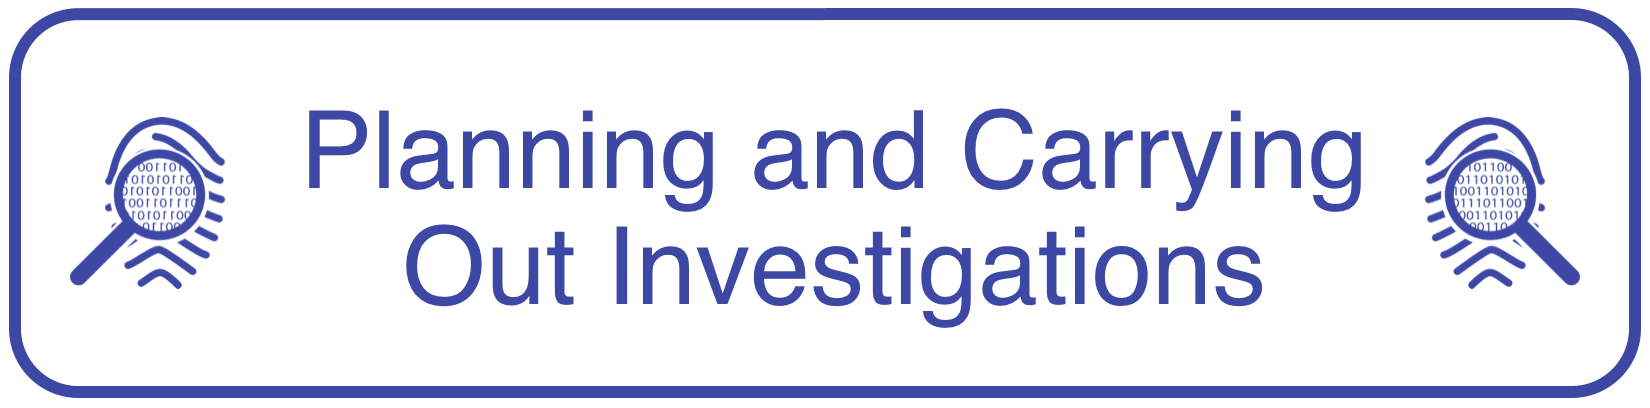 Planning_and_Carrying_Out_Investigations.png